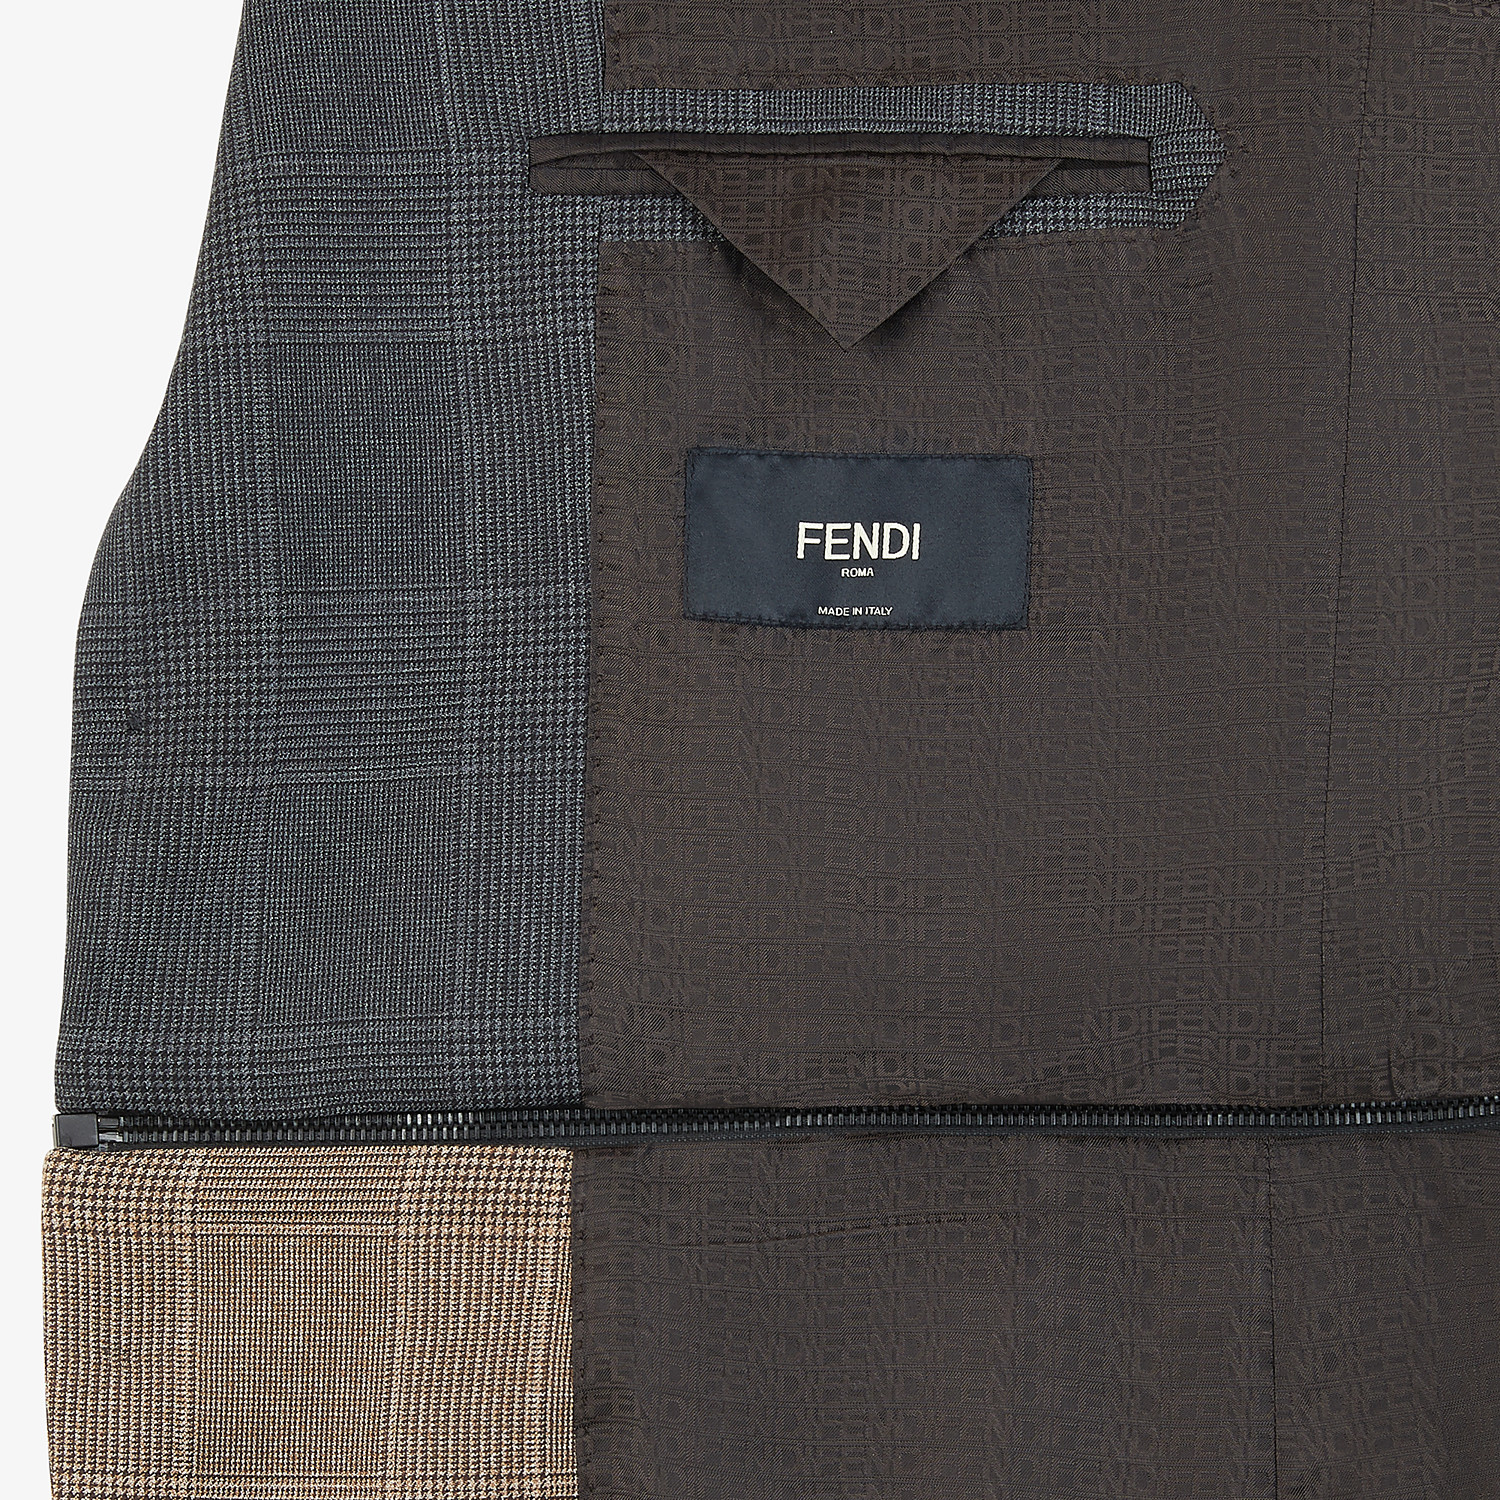 FENDI JACKET - Multicolour Prince of Wales check blazer - view 5 detail